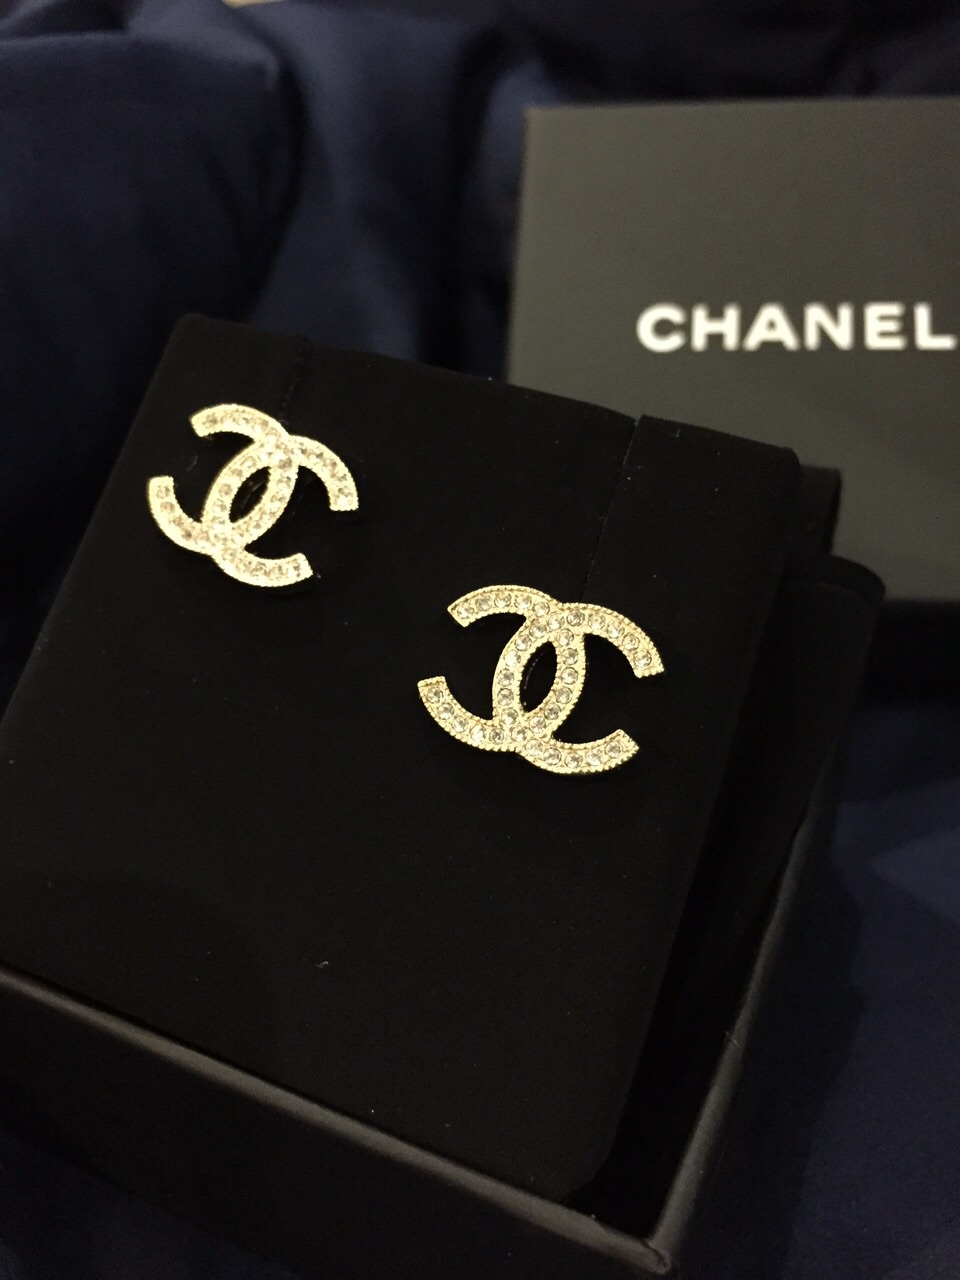 deabeecd SOLD] FOR SALE: BNIB DOUBLE C CHANEL EARRINGS WITH RHINESTONES ...